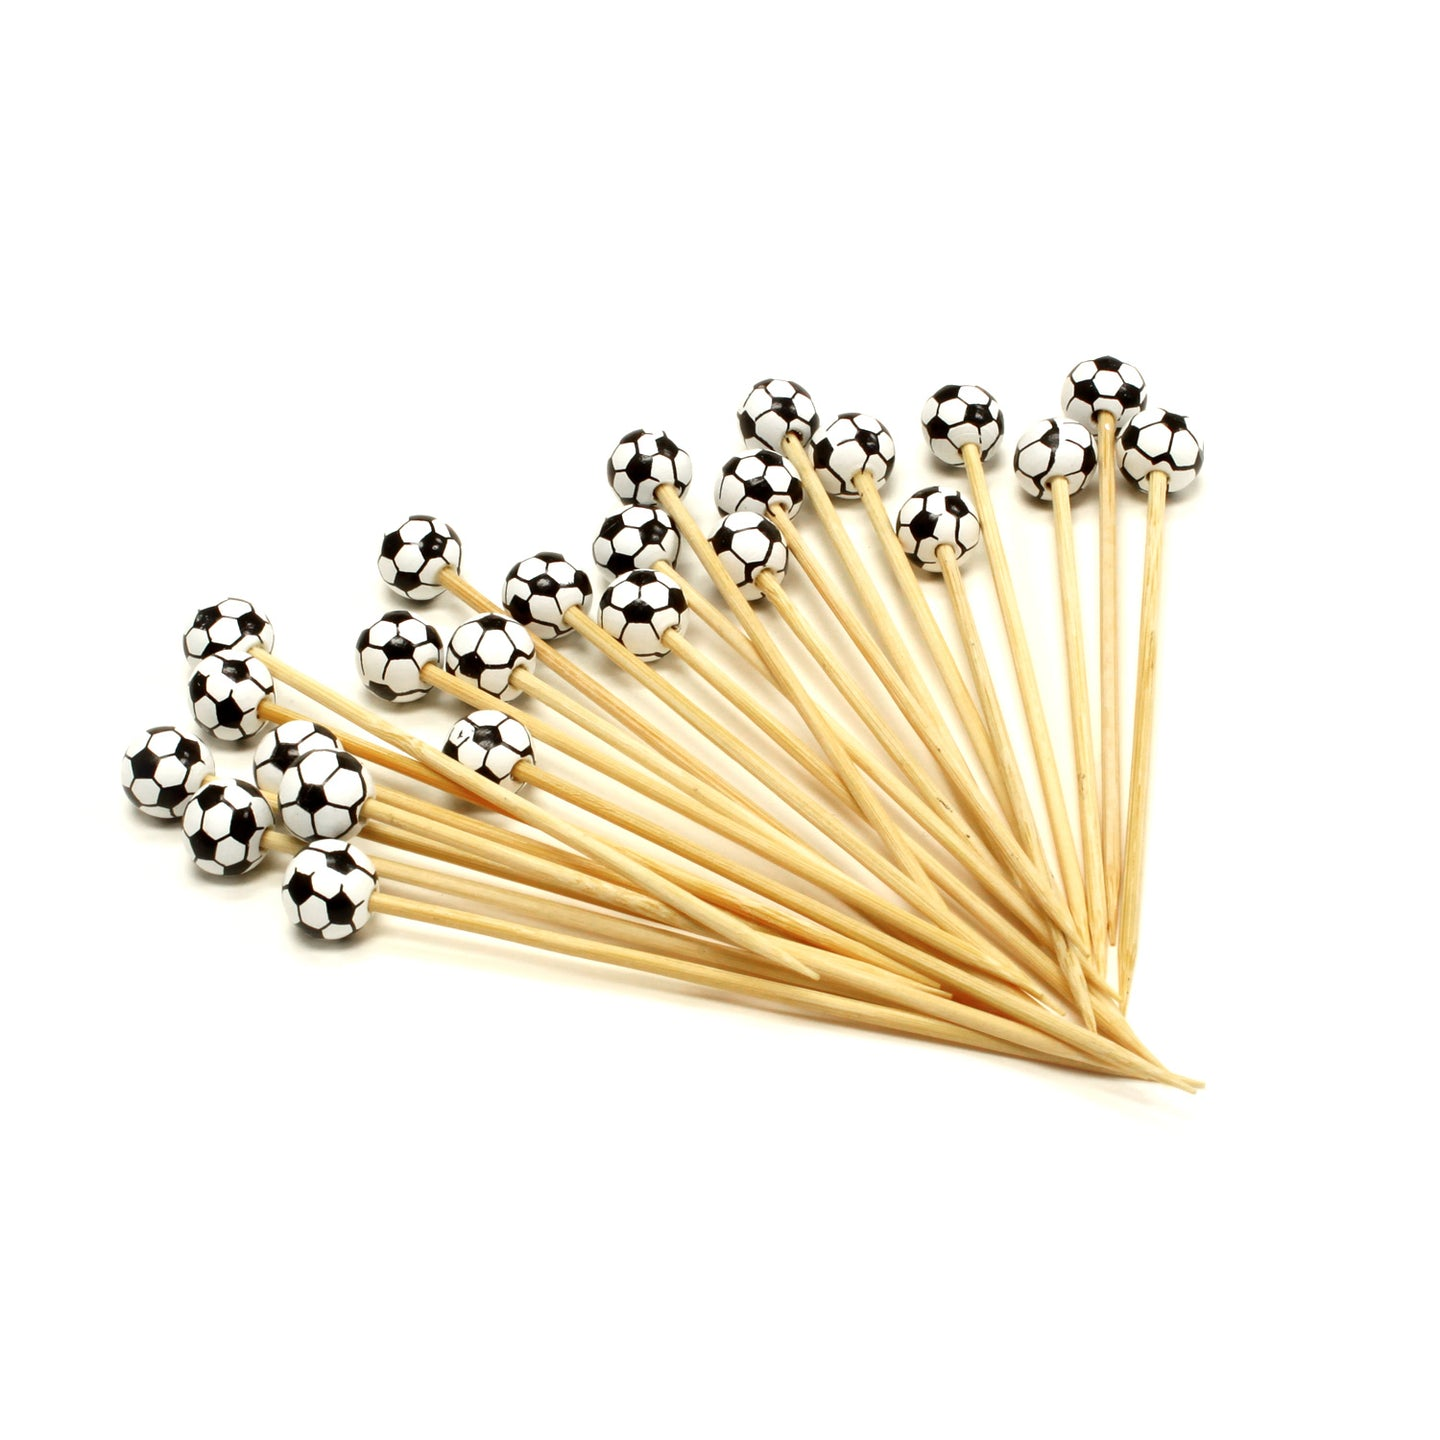 BP-13 Bamboo Soccer Ball Pick (4800 count/case)